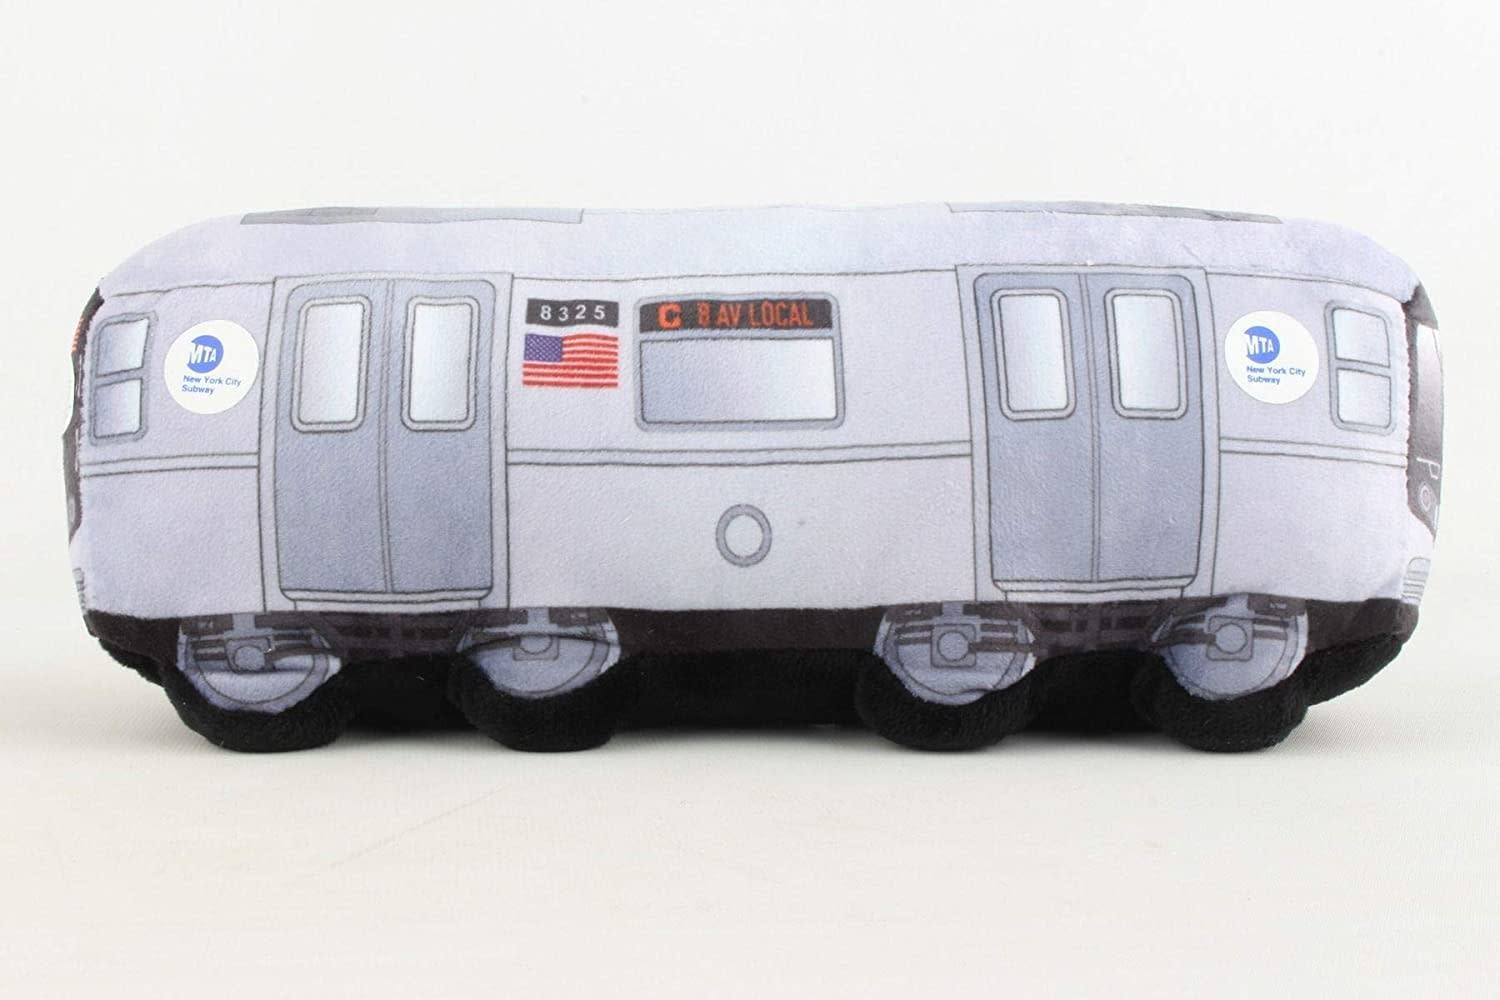 MTA Plush Subway Train